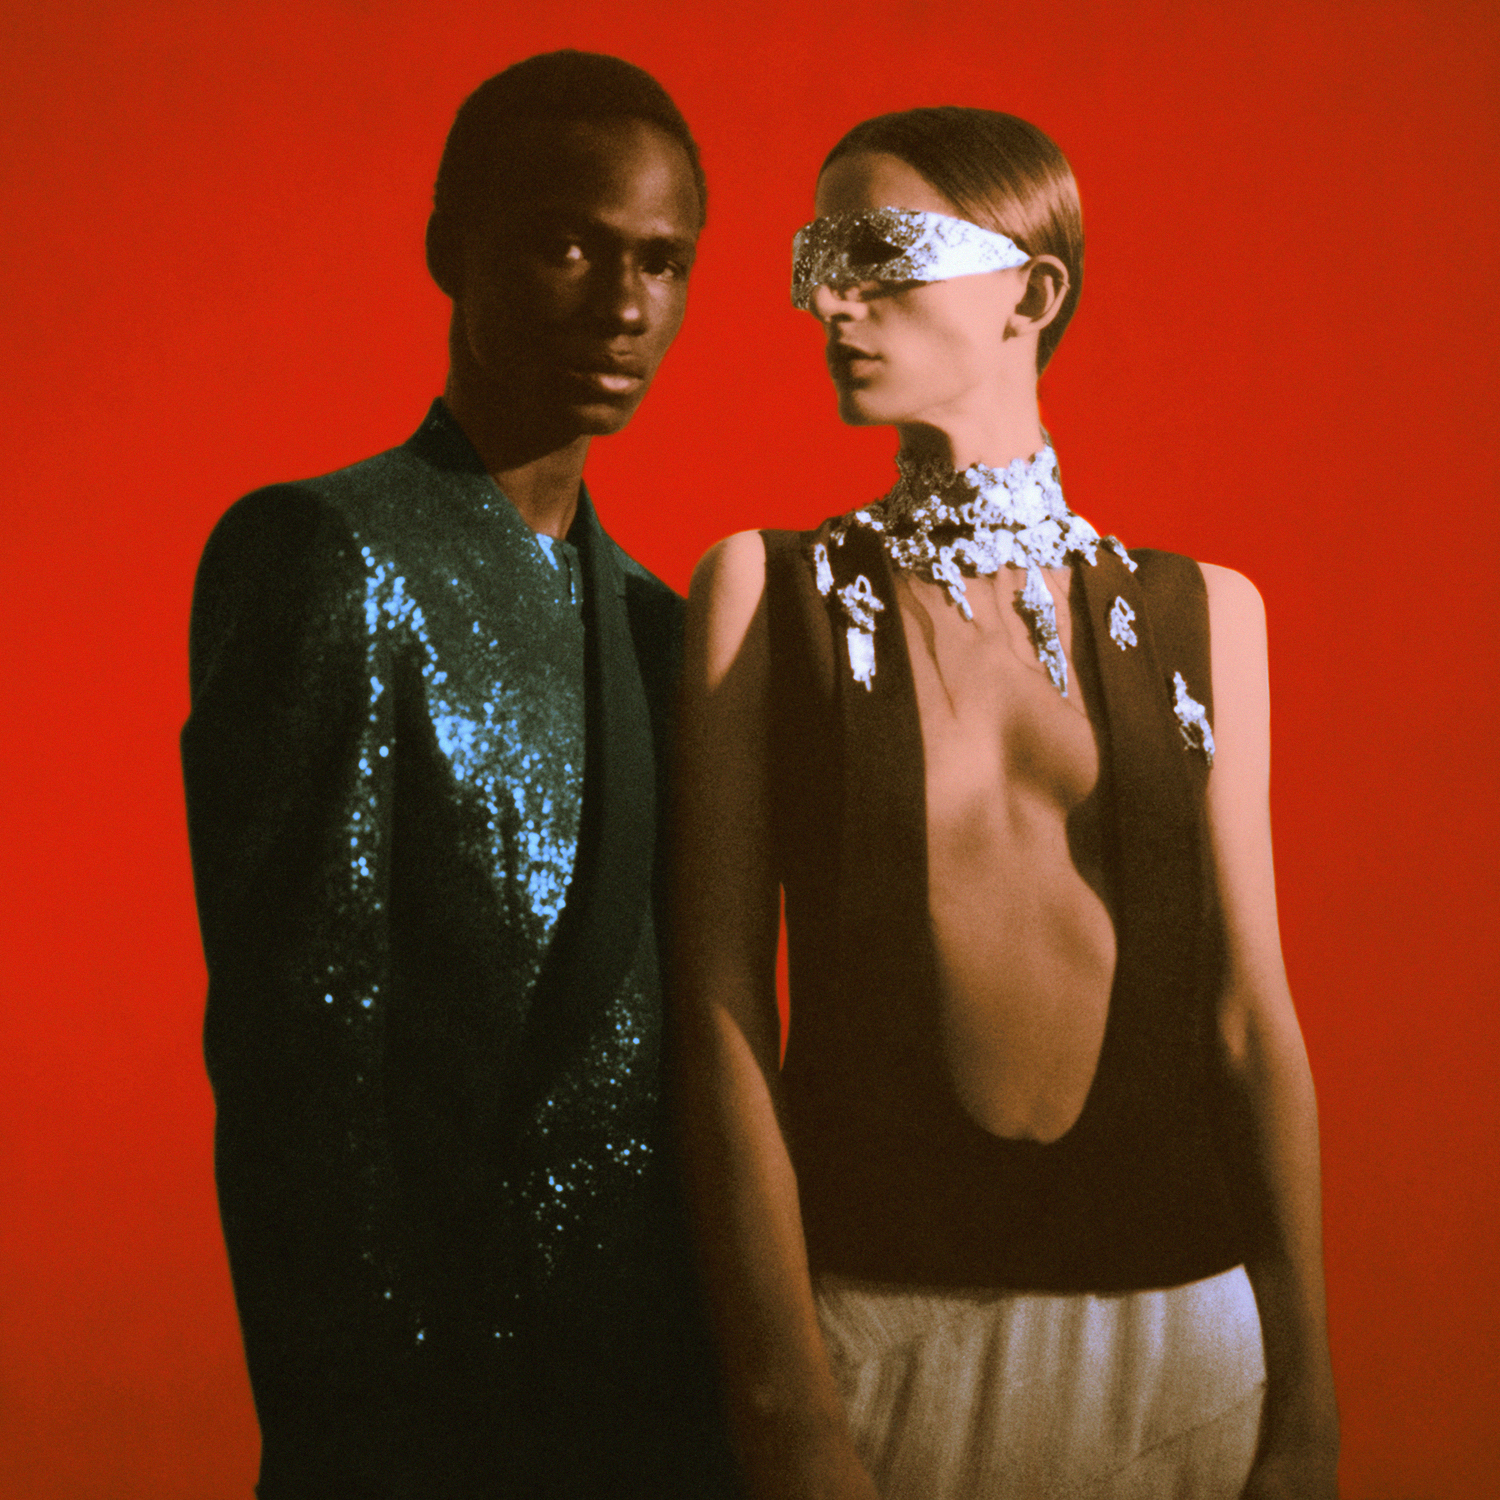 17 - Givenchy Haute Couture - Neil Krug.jpg